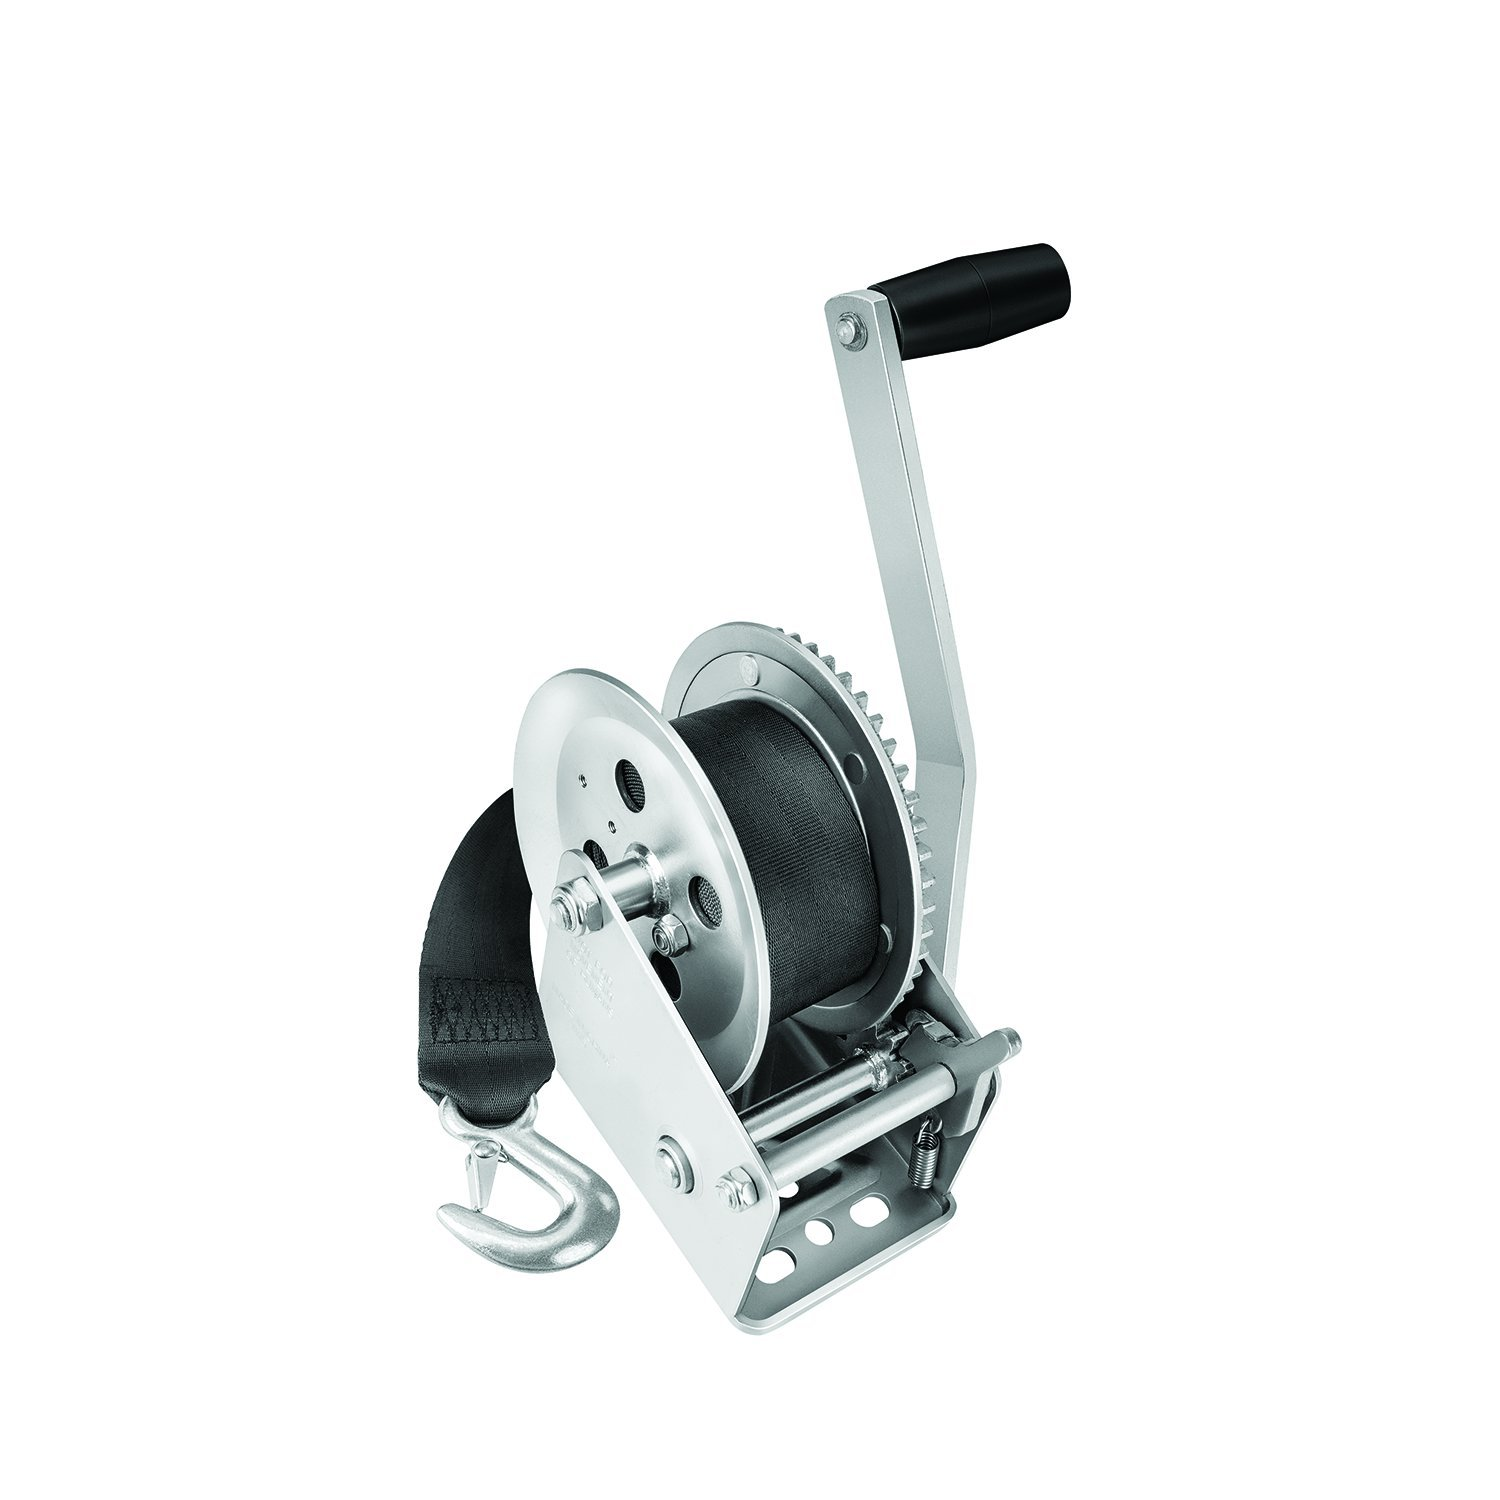 Capacity Fulton 142305 Single Speed Winch with 20/' Strap-1800 lbs Fulton 142305 Single Speed Winch with 20 Strap-1800 lbs Capacity